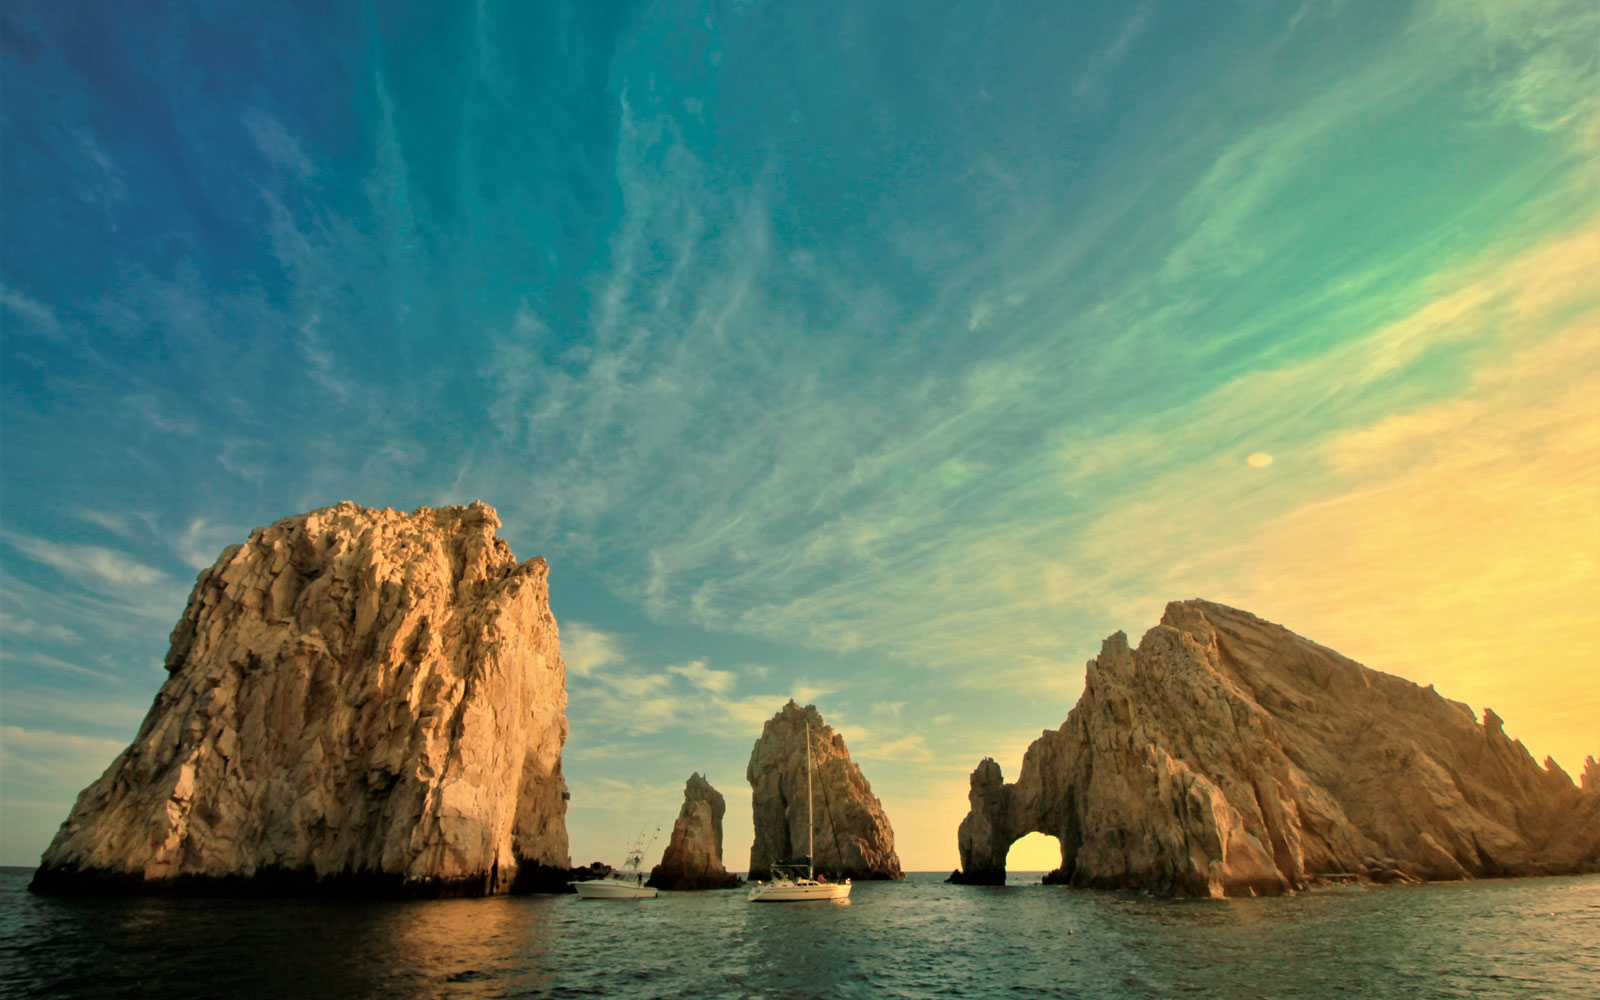 Take a trip to Cabo San Lucas, Mexico for as little as $231 round-trip with Southwest's sale.